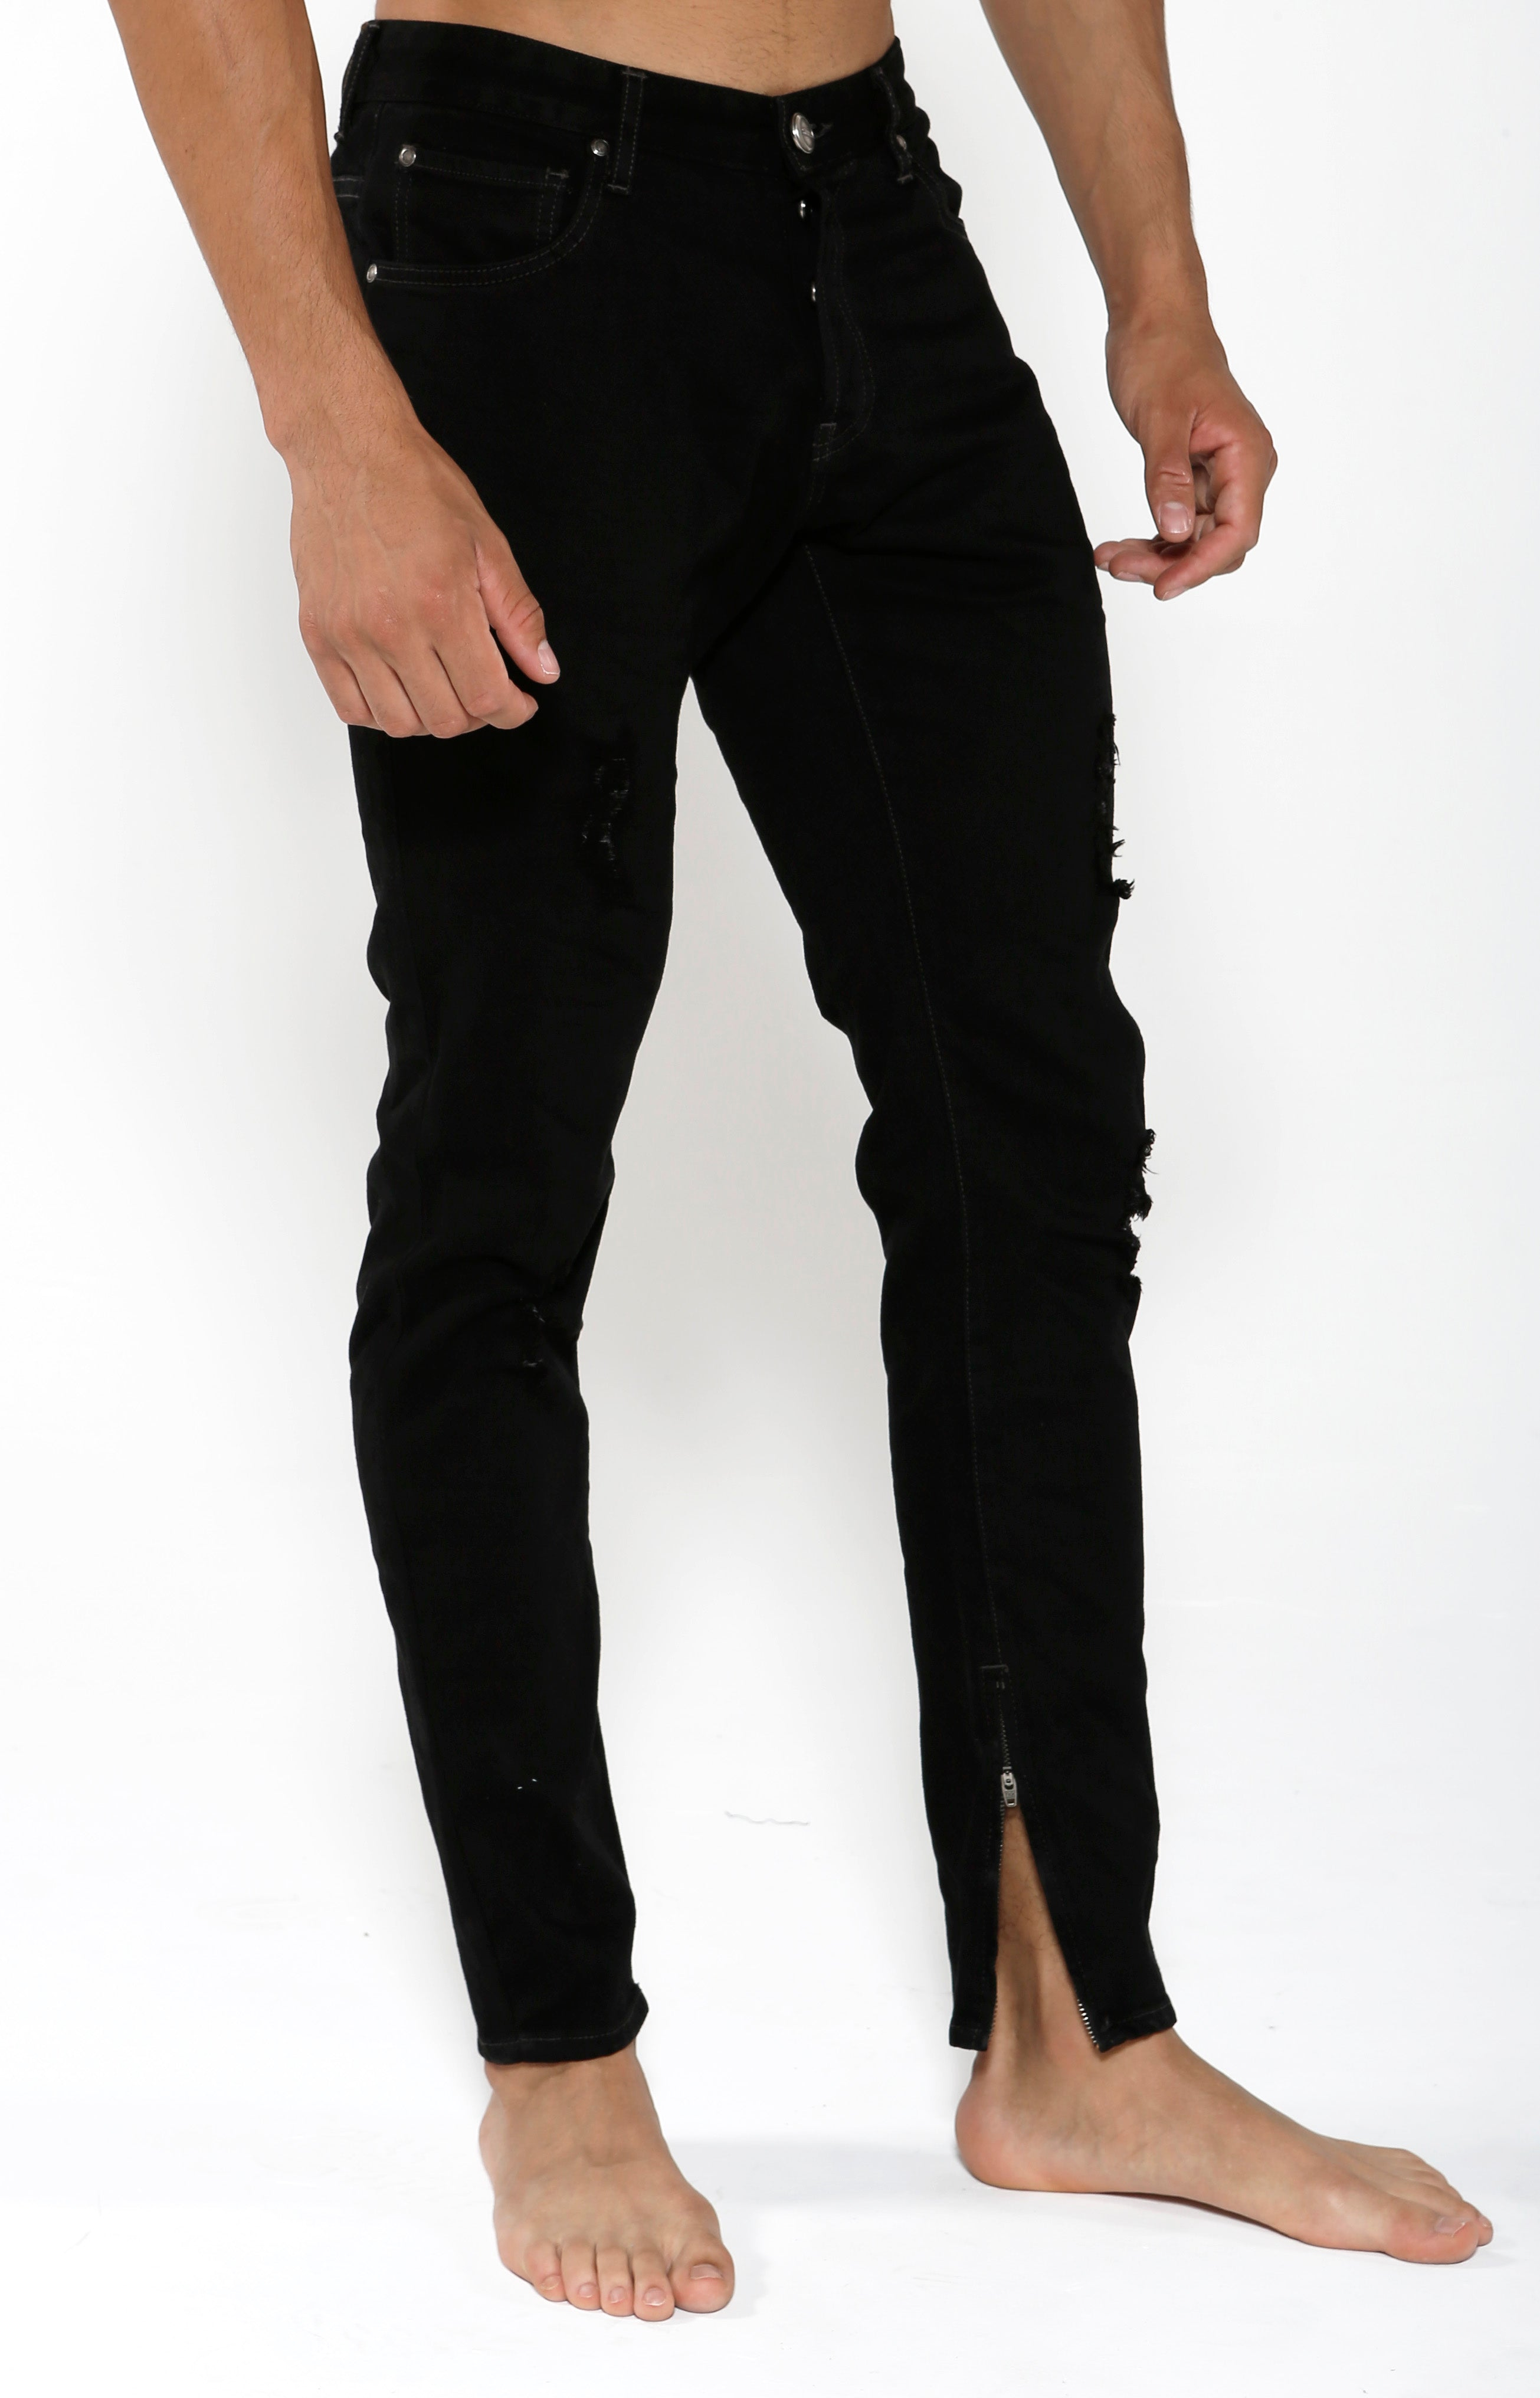 Tapered Stretch Denim - Black Onyx - Golden Aesthetics